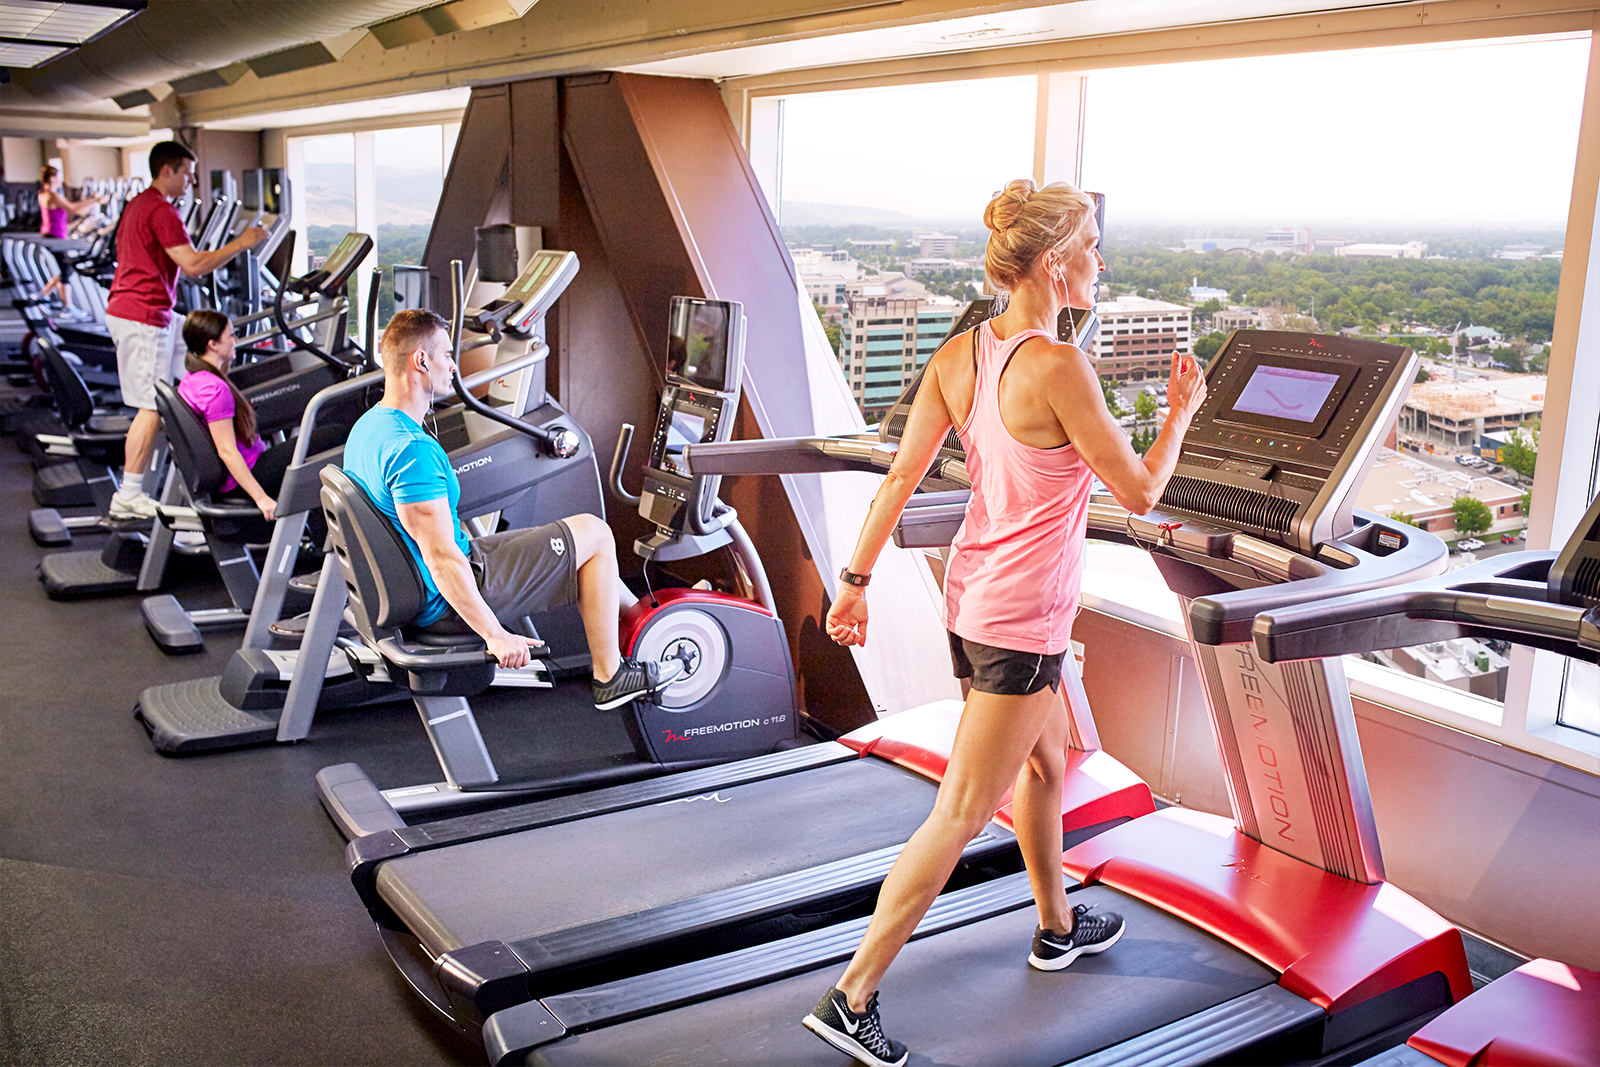 people working out on cardio machines at the Grove Fitness Club & Spa